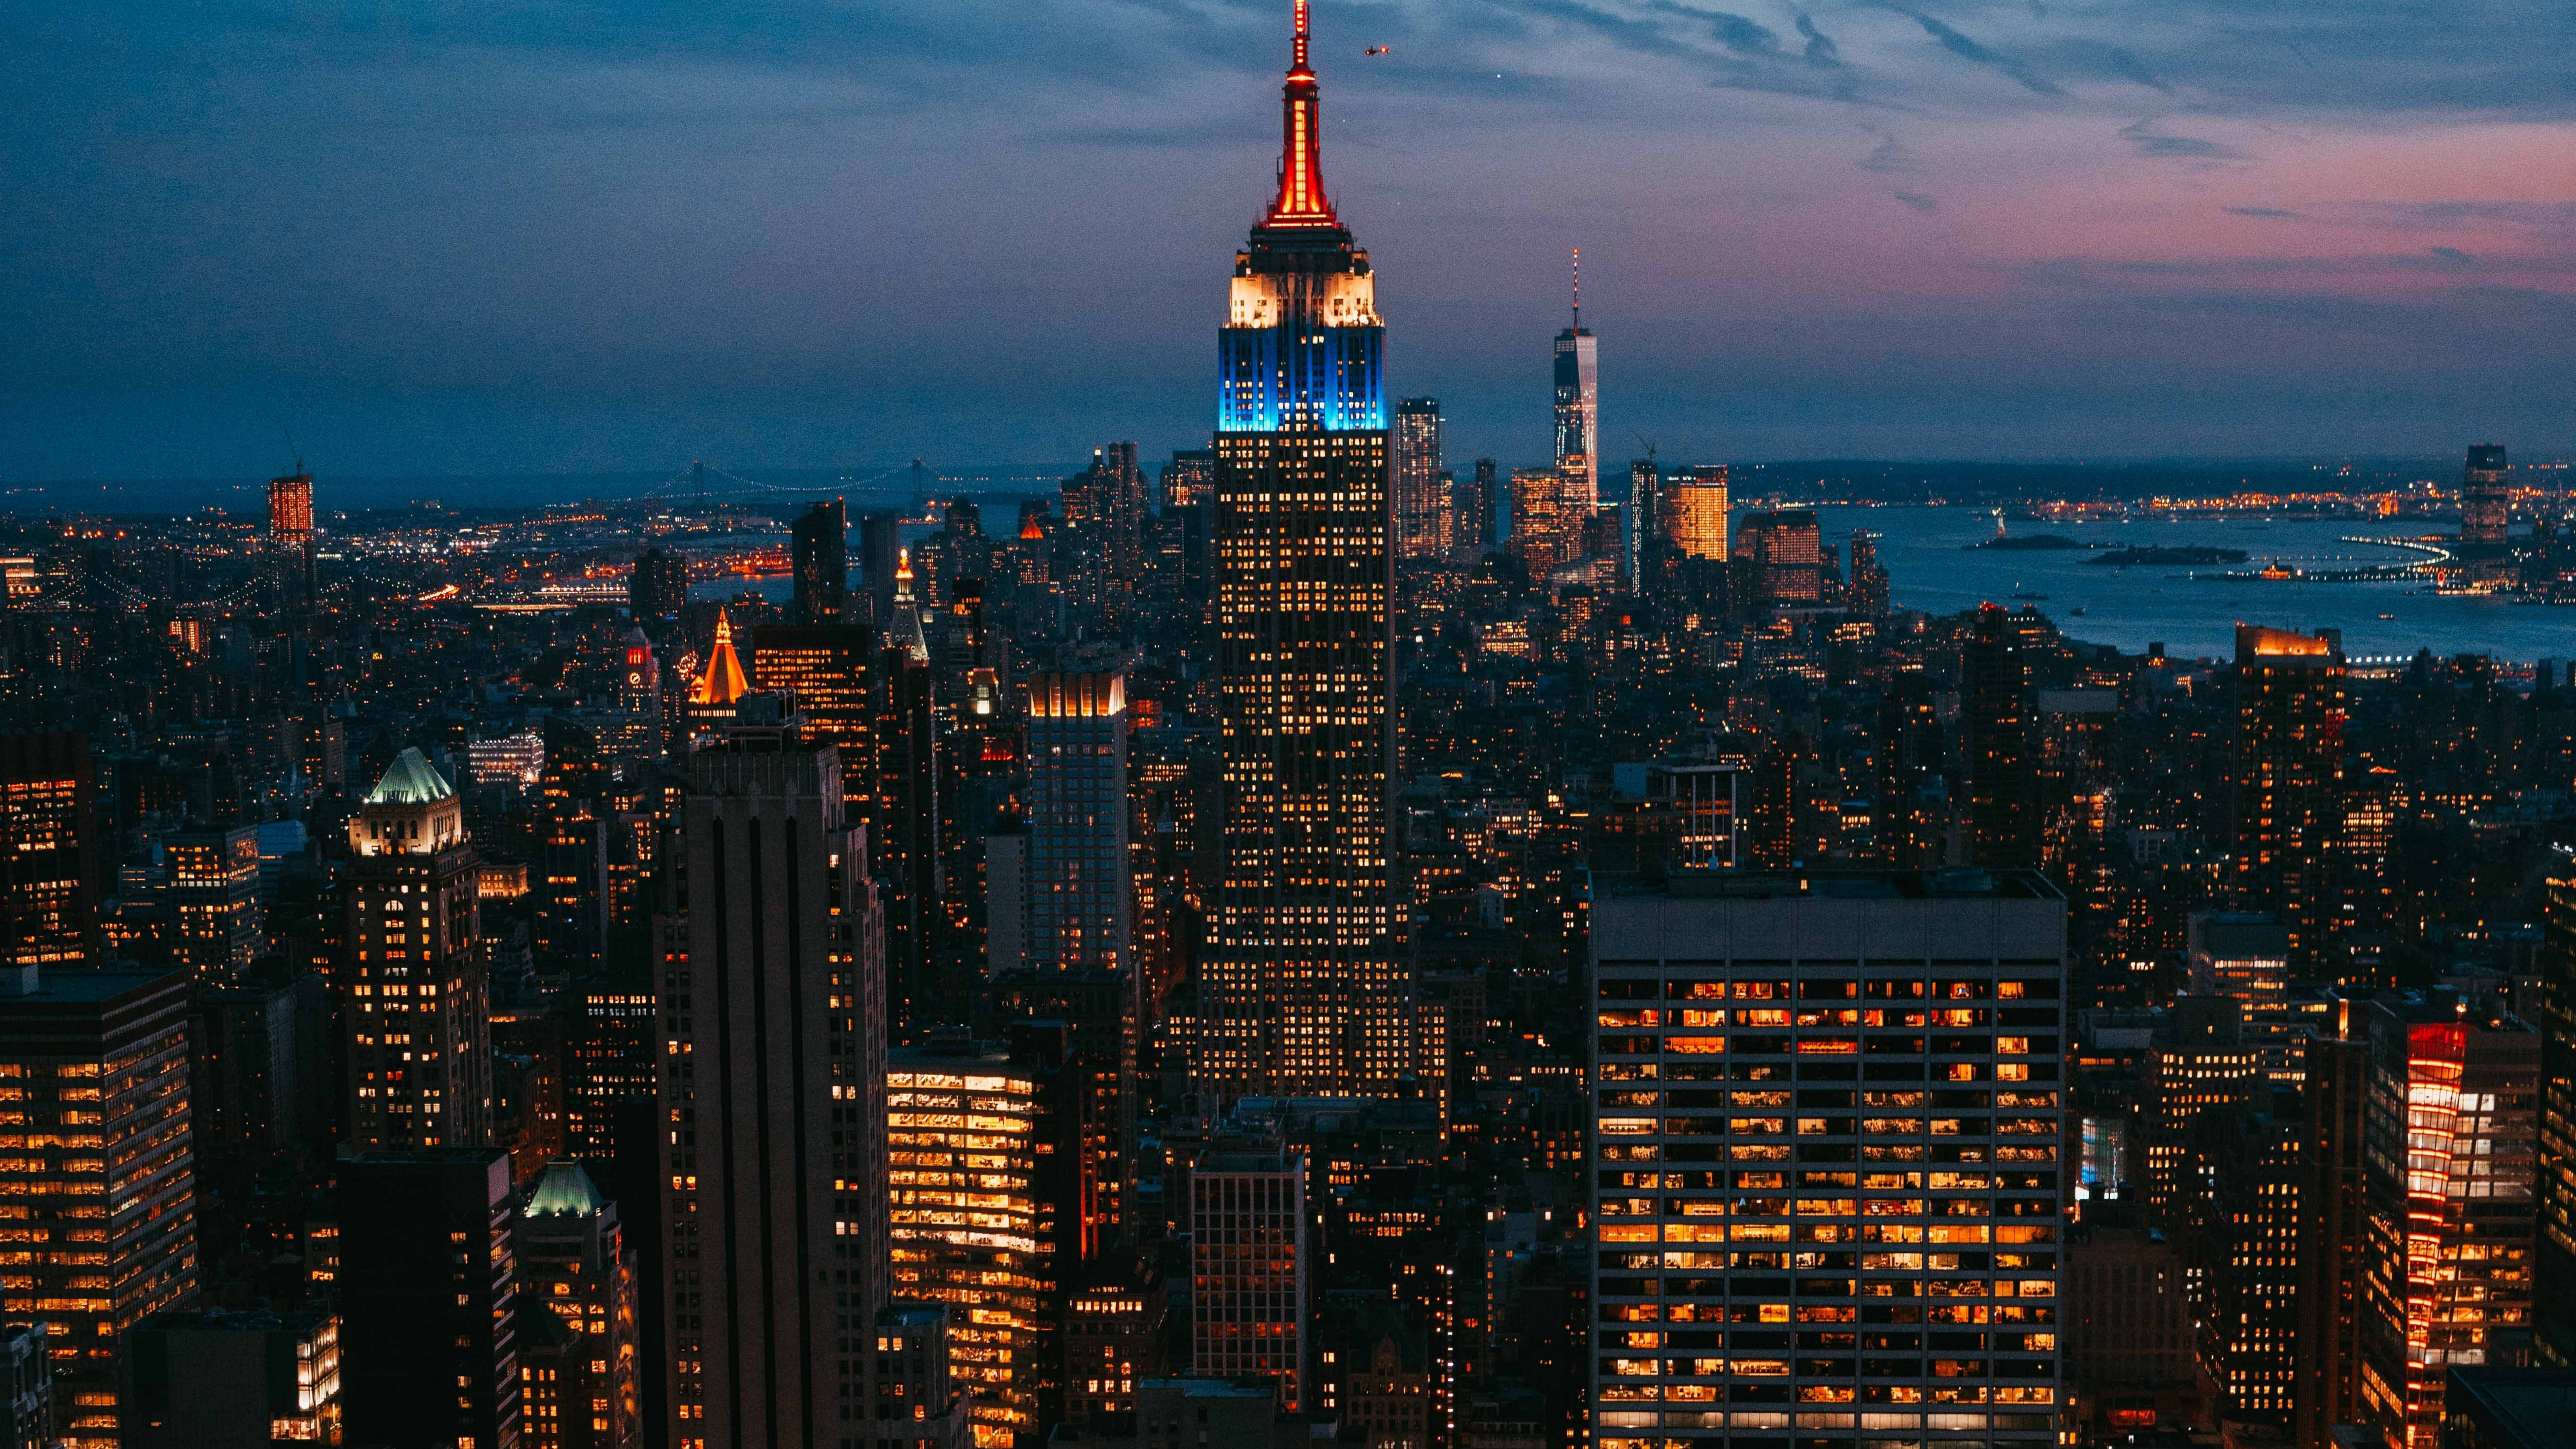 Wallpaper 4k Night City City Lights Skyscraper New York Metropolis Top View Usa 4k City Lights Night City Skyscraper